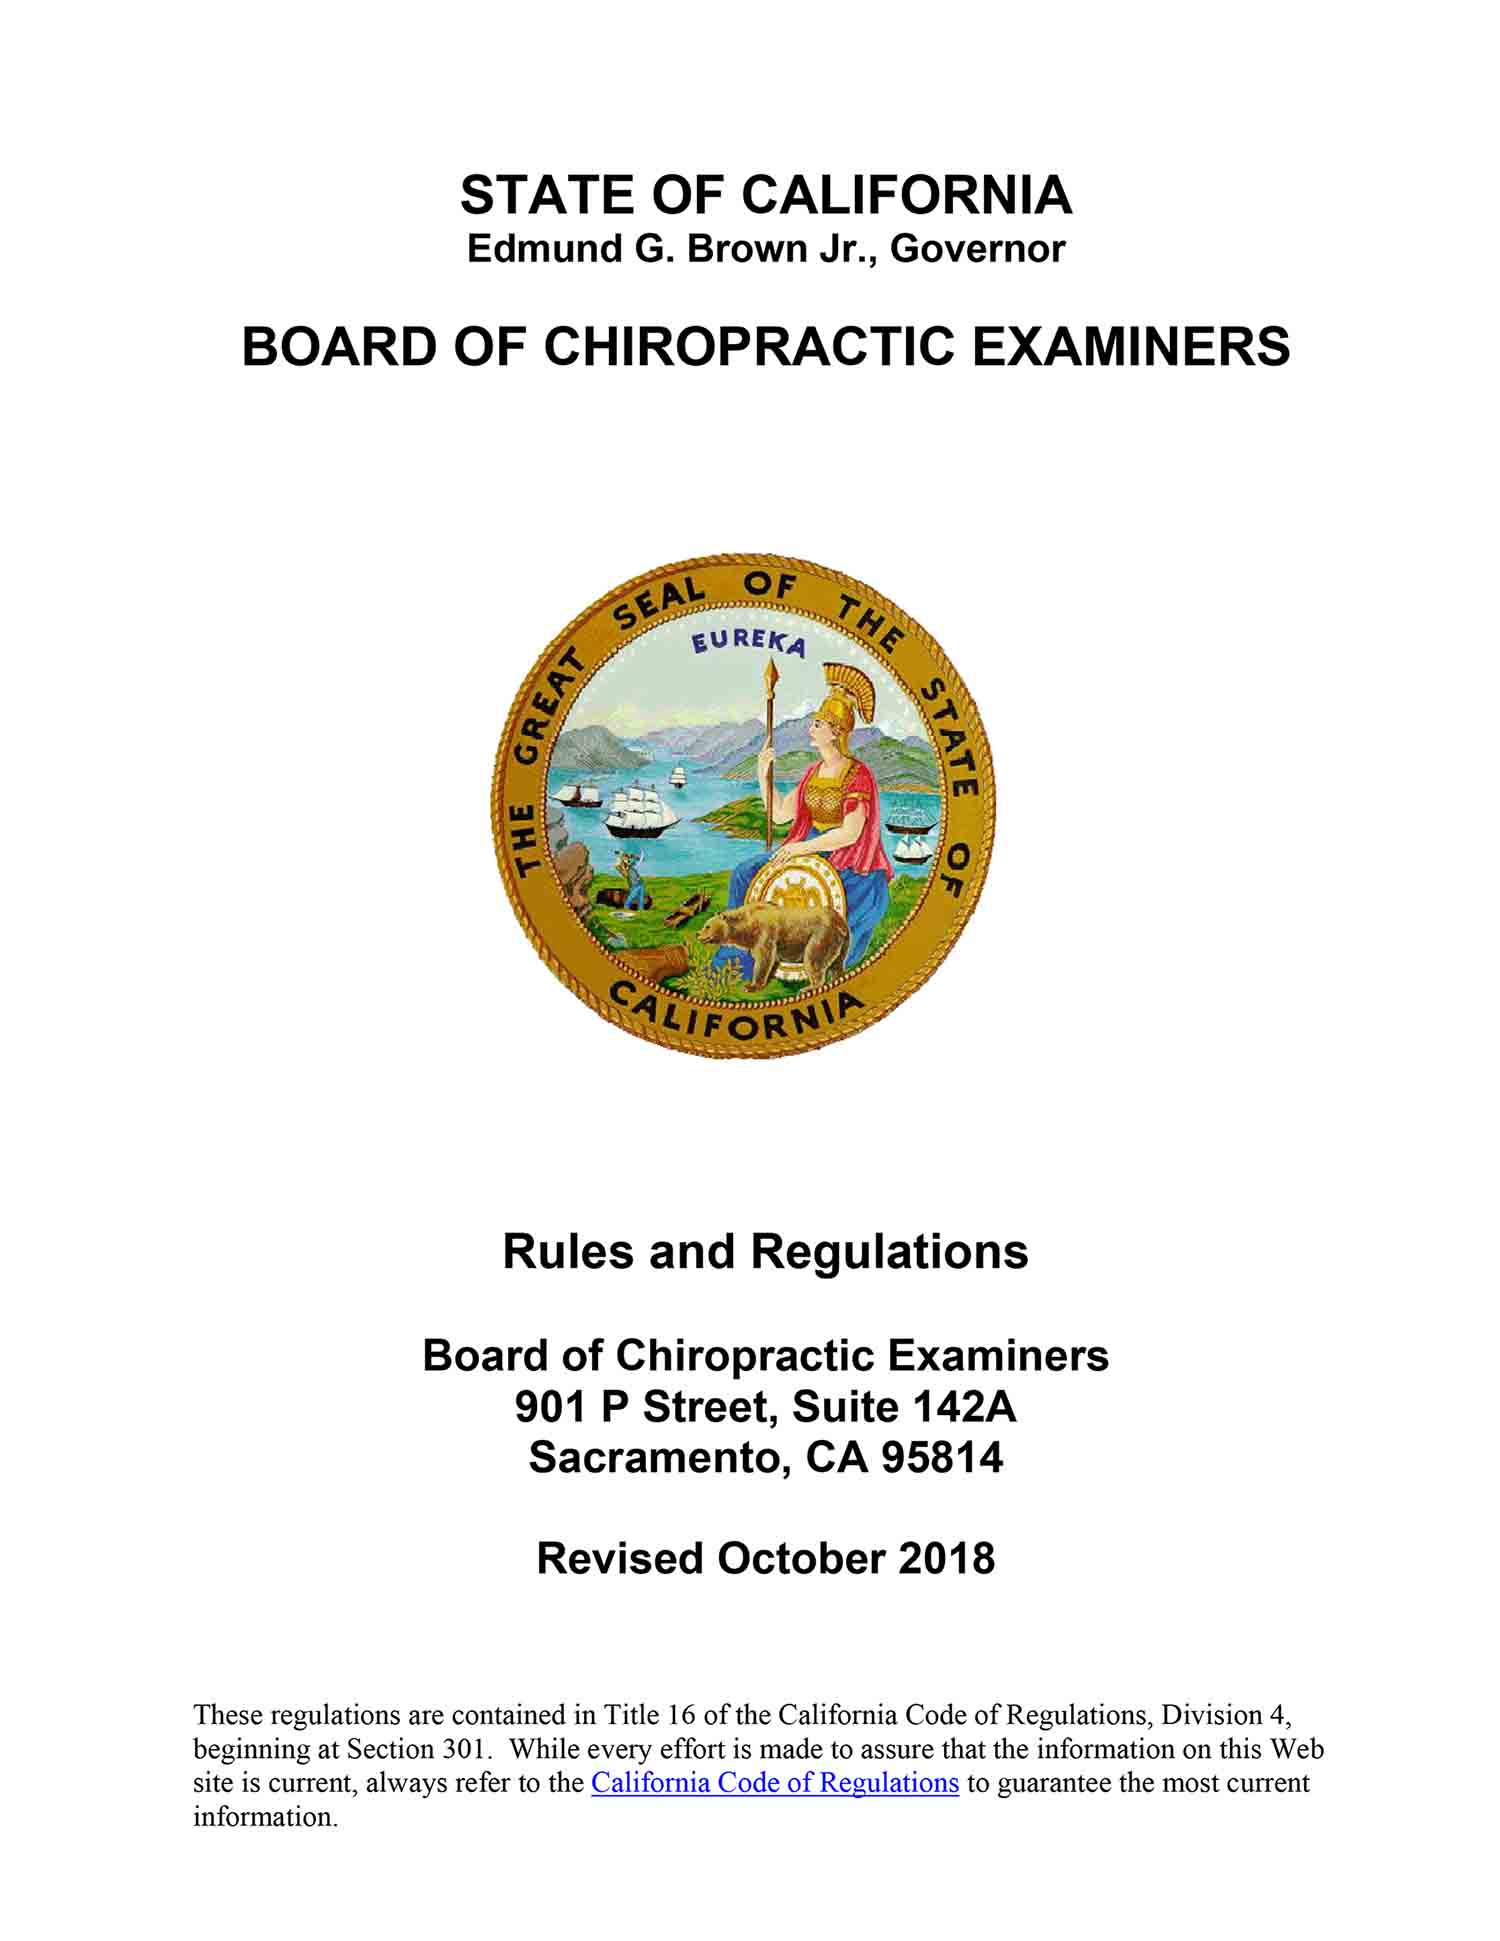 State-Board-of-Chiropractic-Examiners-Rules-Regulations-October-2018.jpg